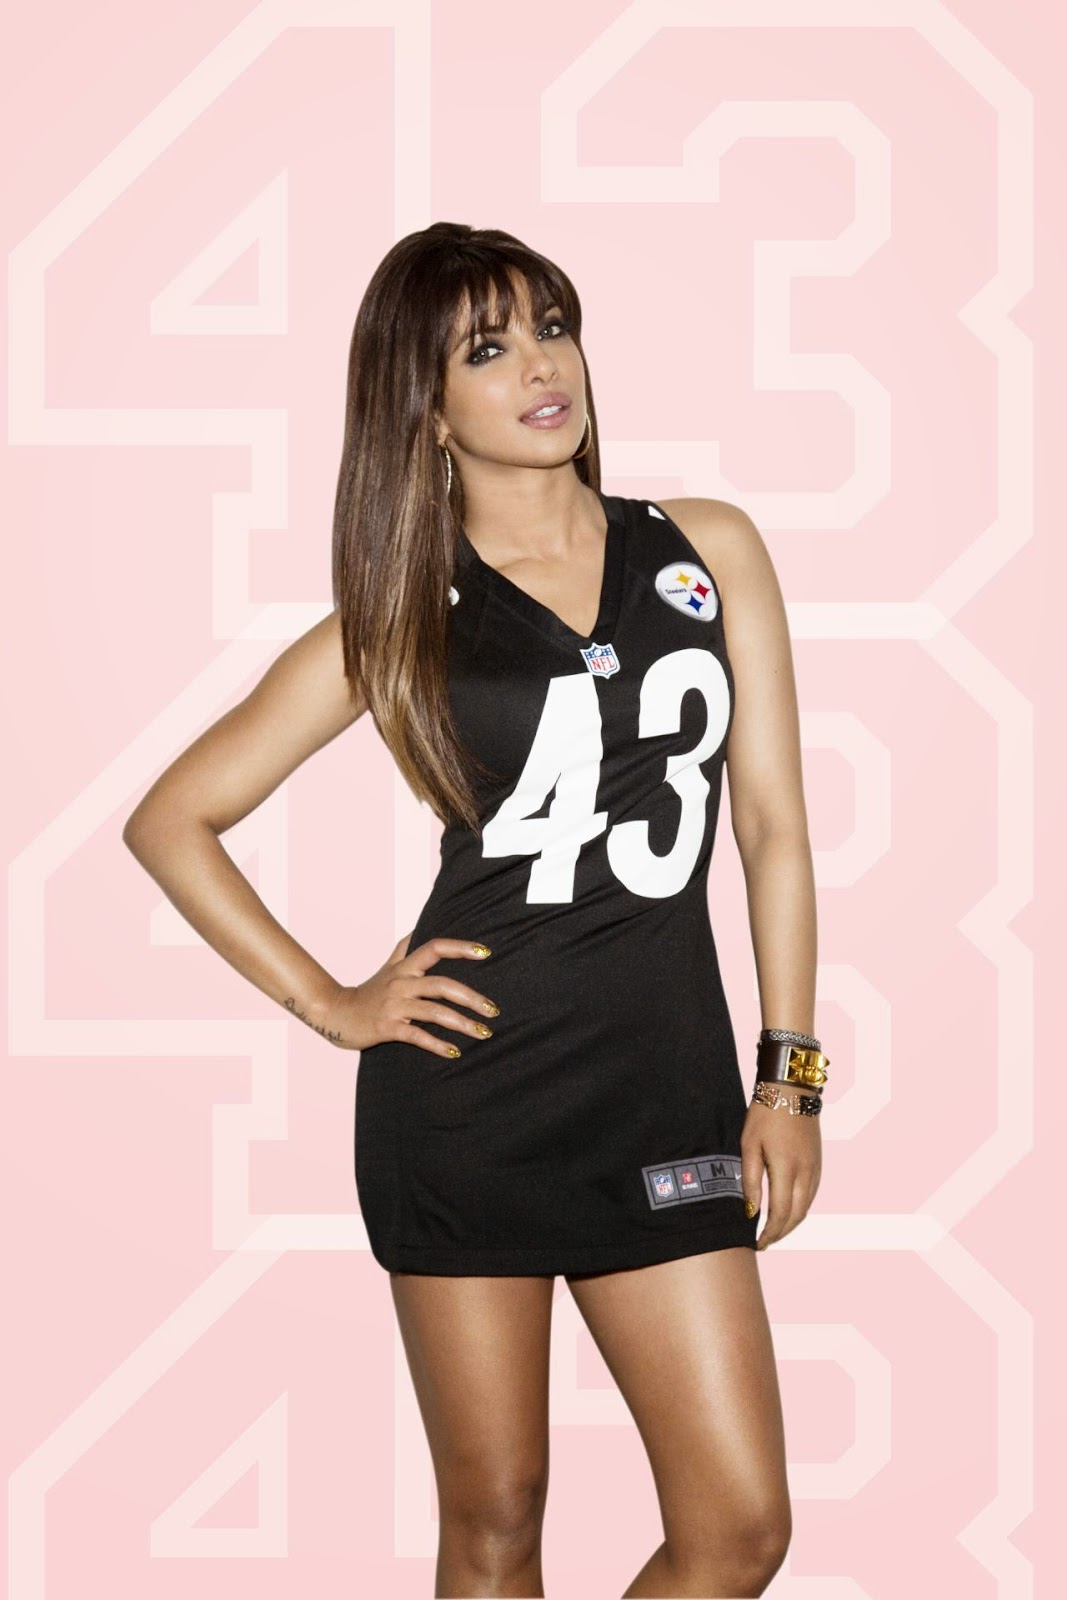 Priyanka Chopra in NFL Jersey No. 43